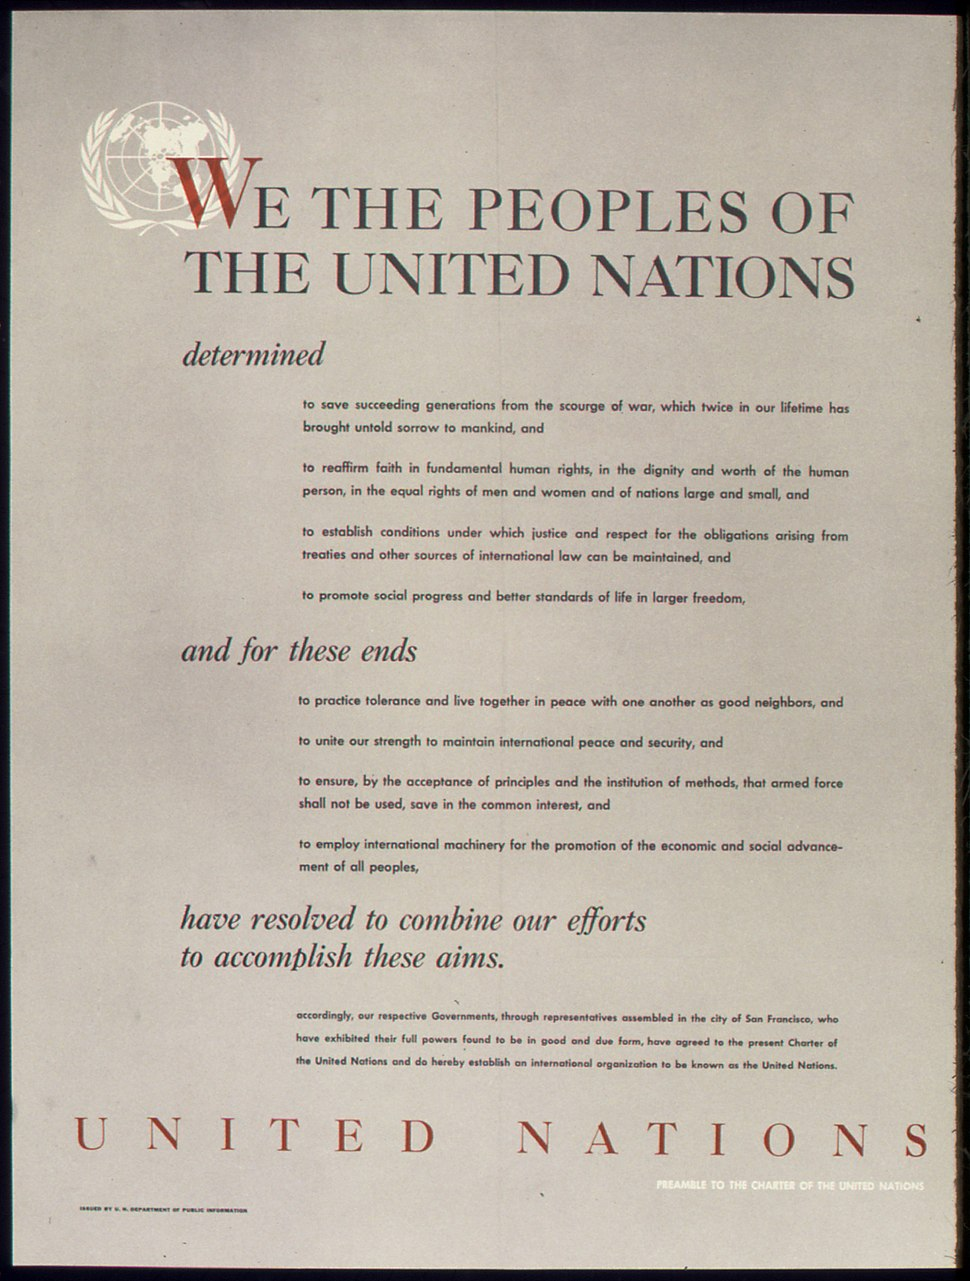 UNITED NATIONS - PREAMBLE TO THE CHARTER OF THE UNITED NATIONS - NARA - 515901